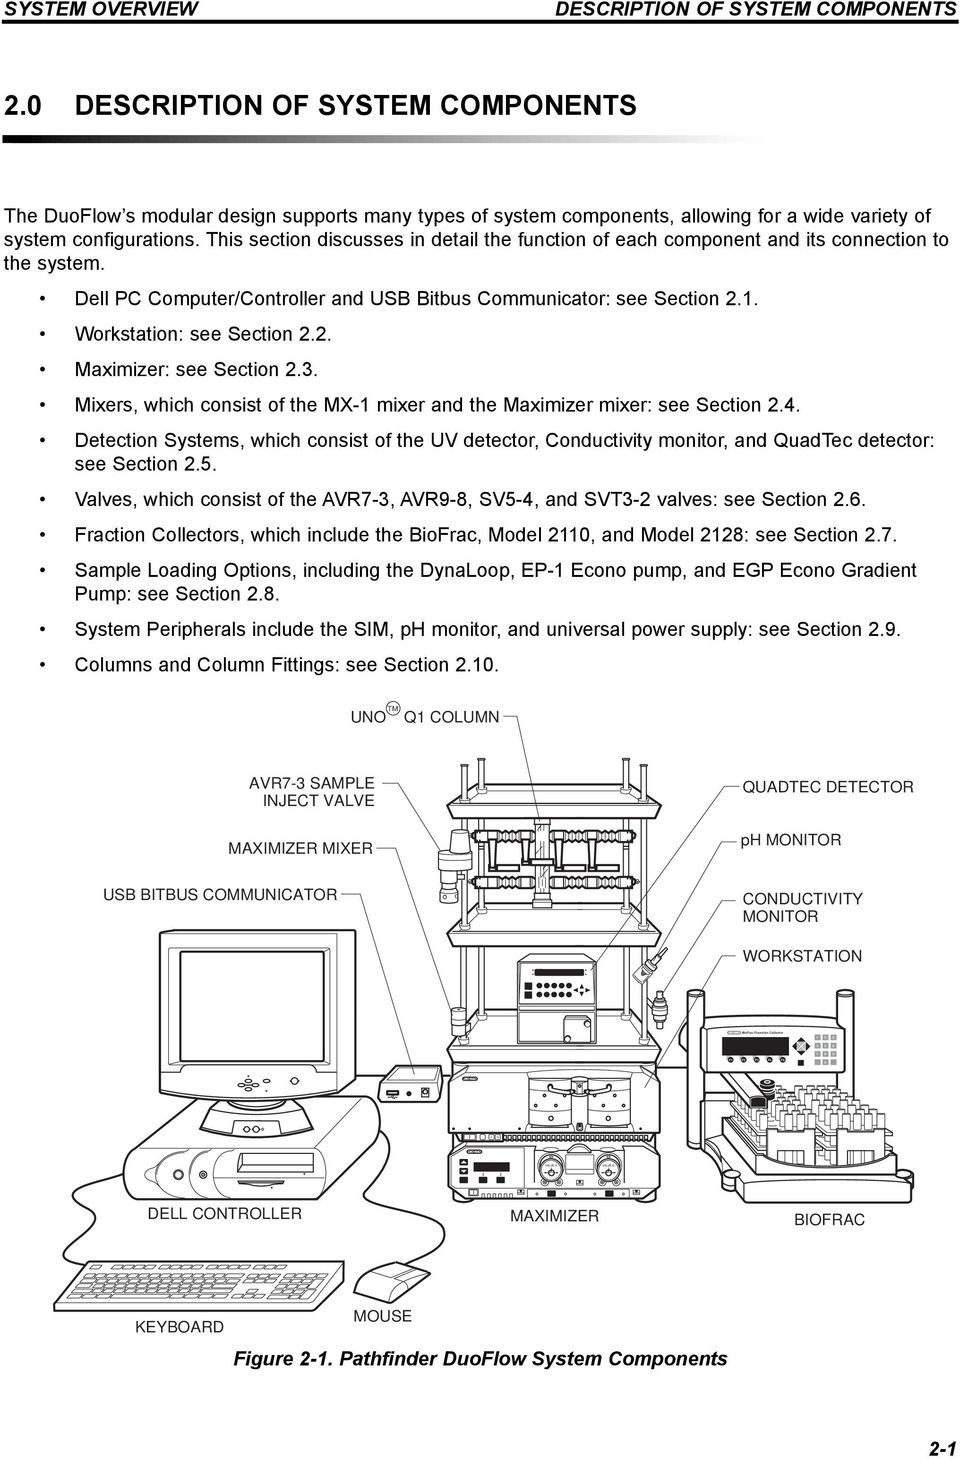 This section discusses in detail the function of each component and its connection to the system. Dell PC Computer/Controller and USB Bitbus Communicator: see Section 2.1. Workstation: see Section 2.